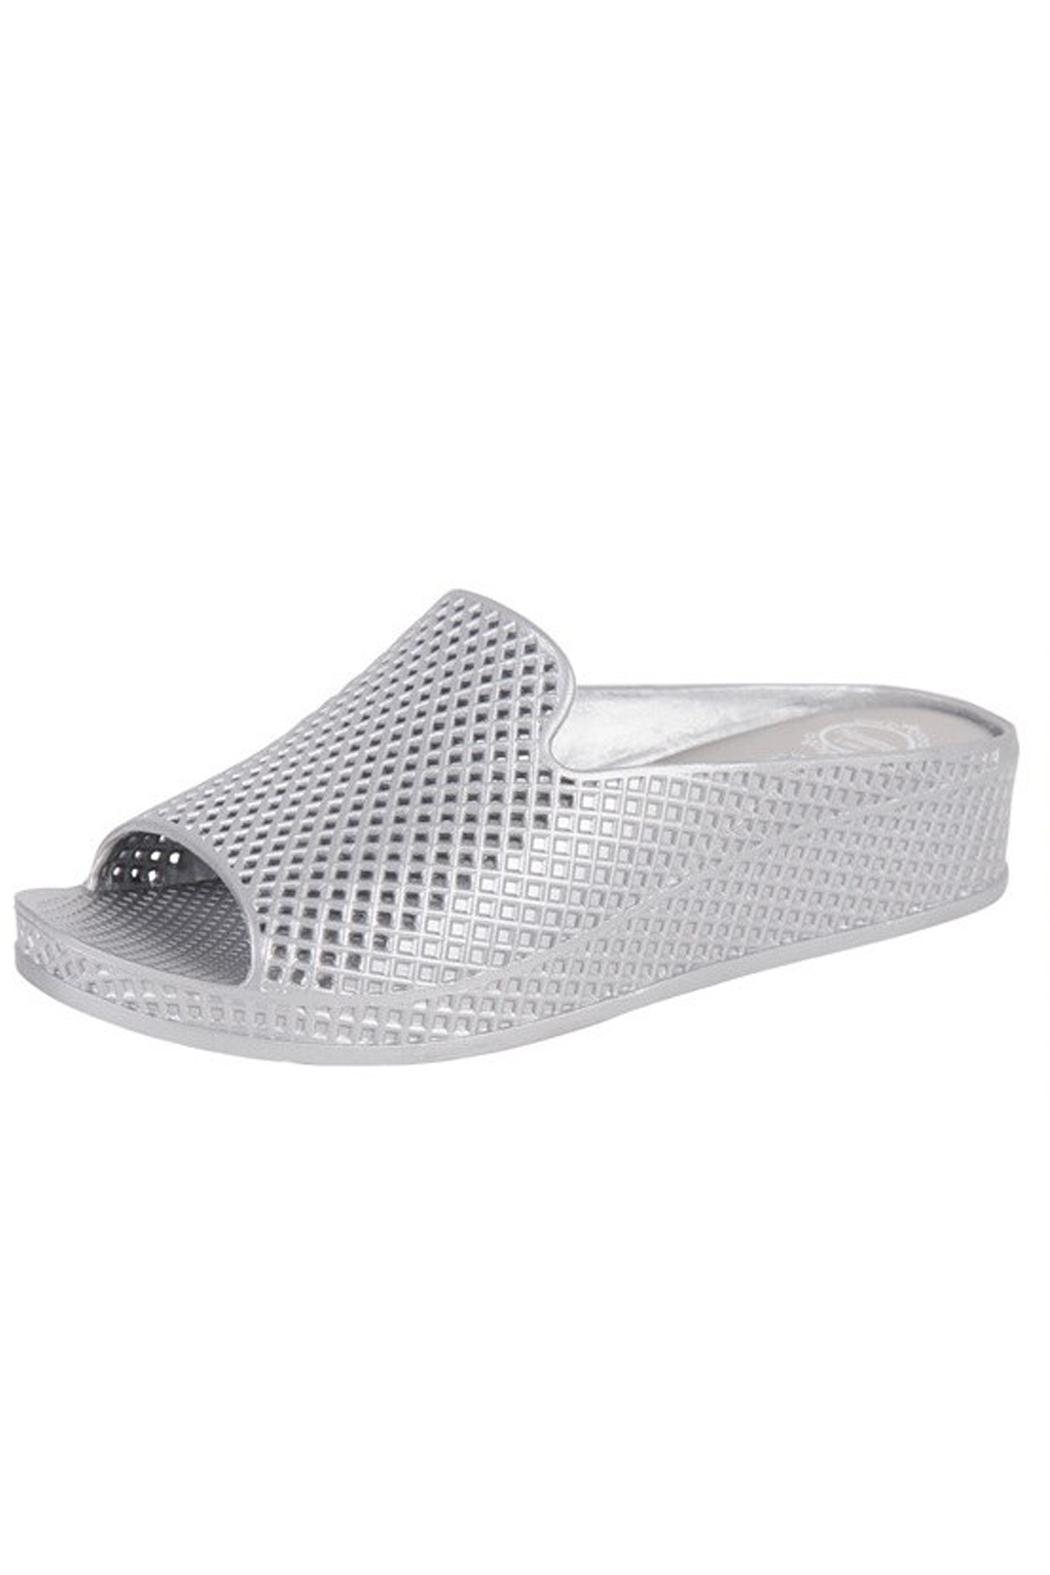 Jeffrey Campbell Silver Slip On Wedge - Main Image